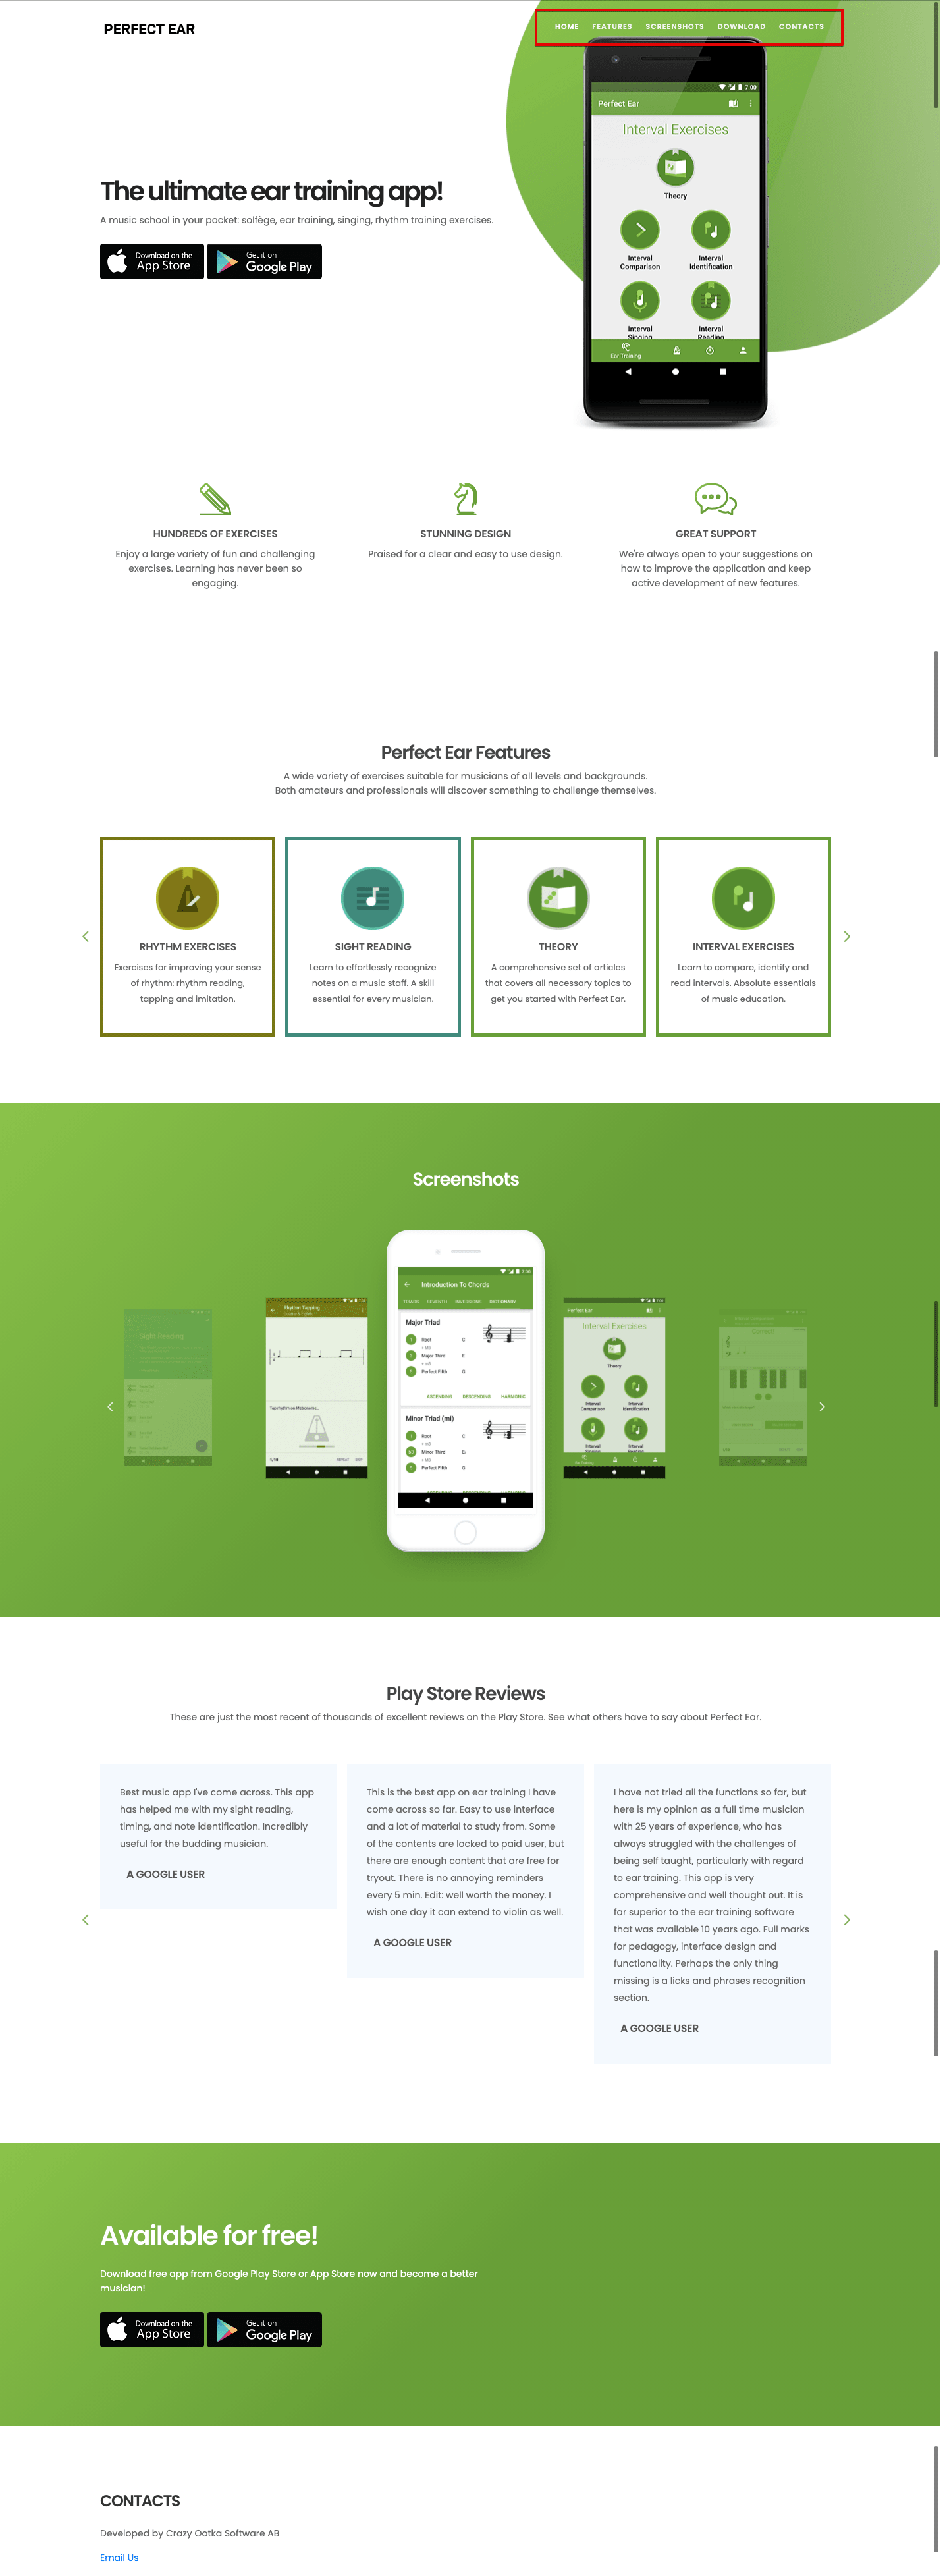 Product page with an anchored menu